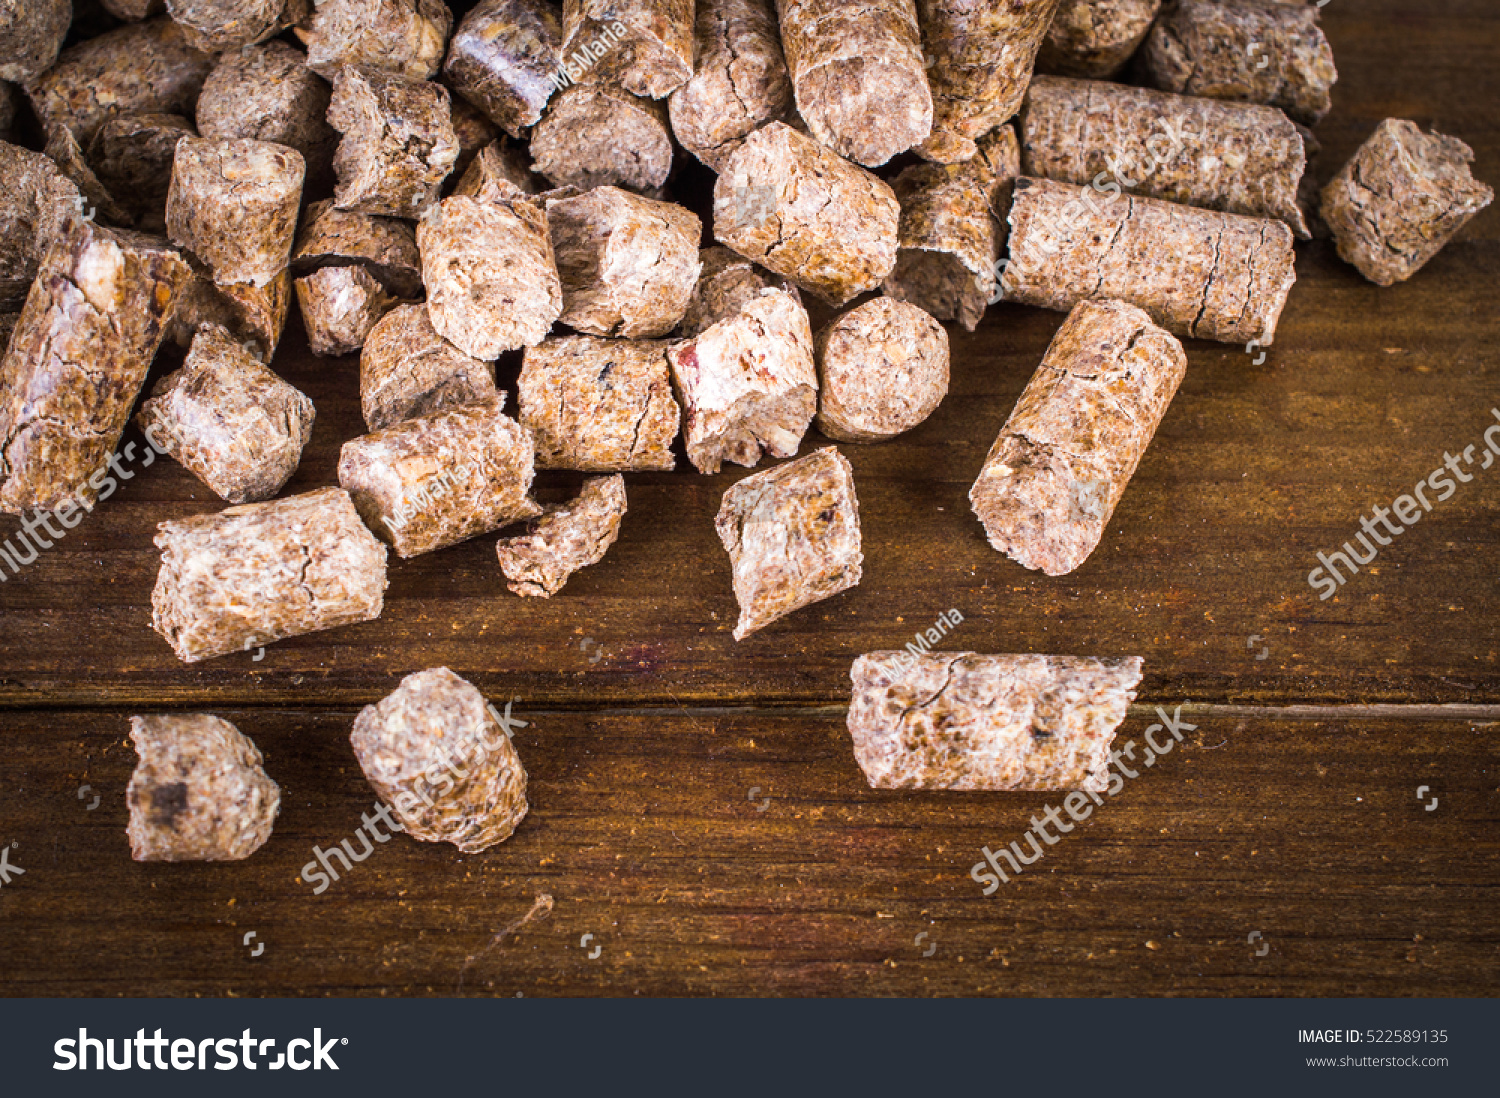 Timber Wood Pellets ~ Wood pellets on wooden background stock photo